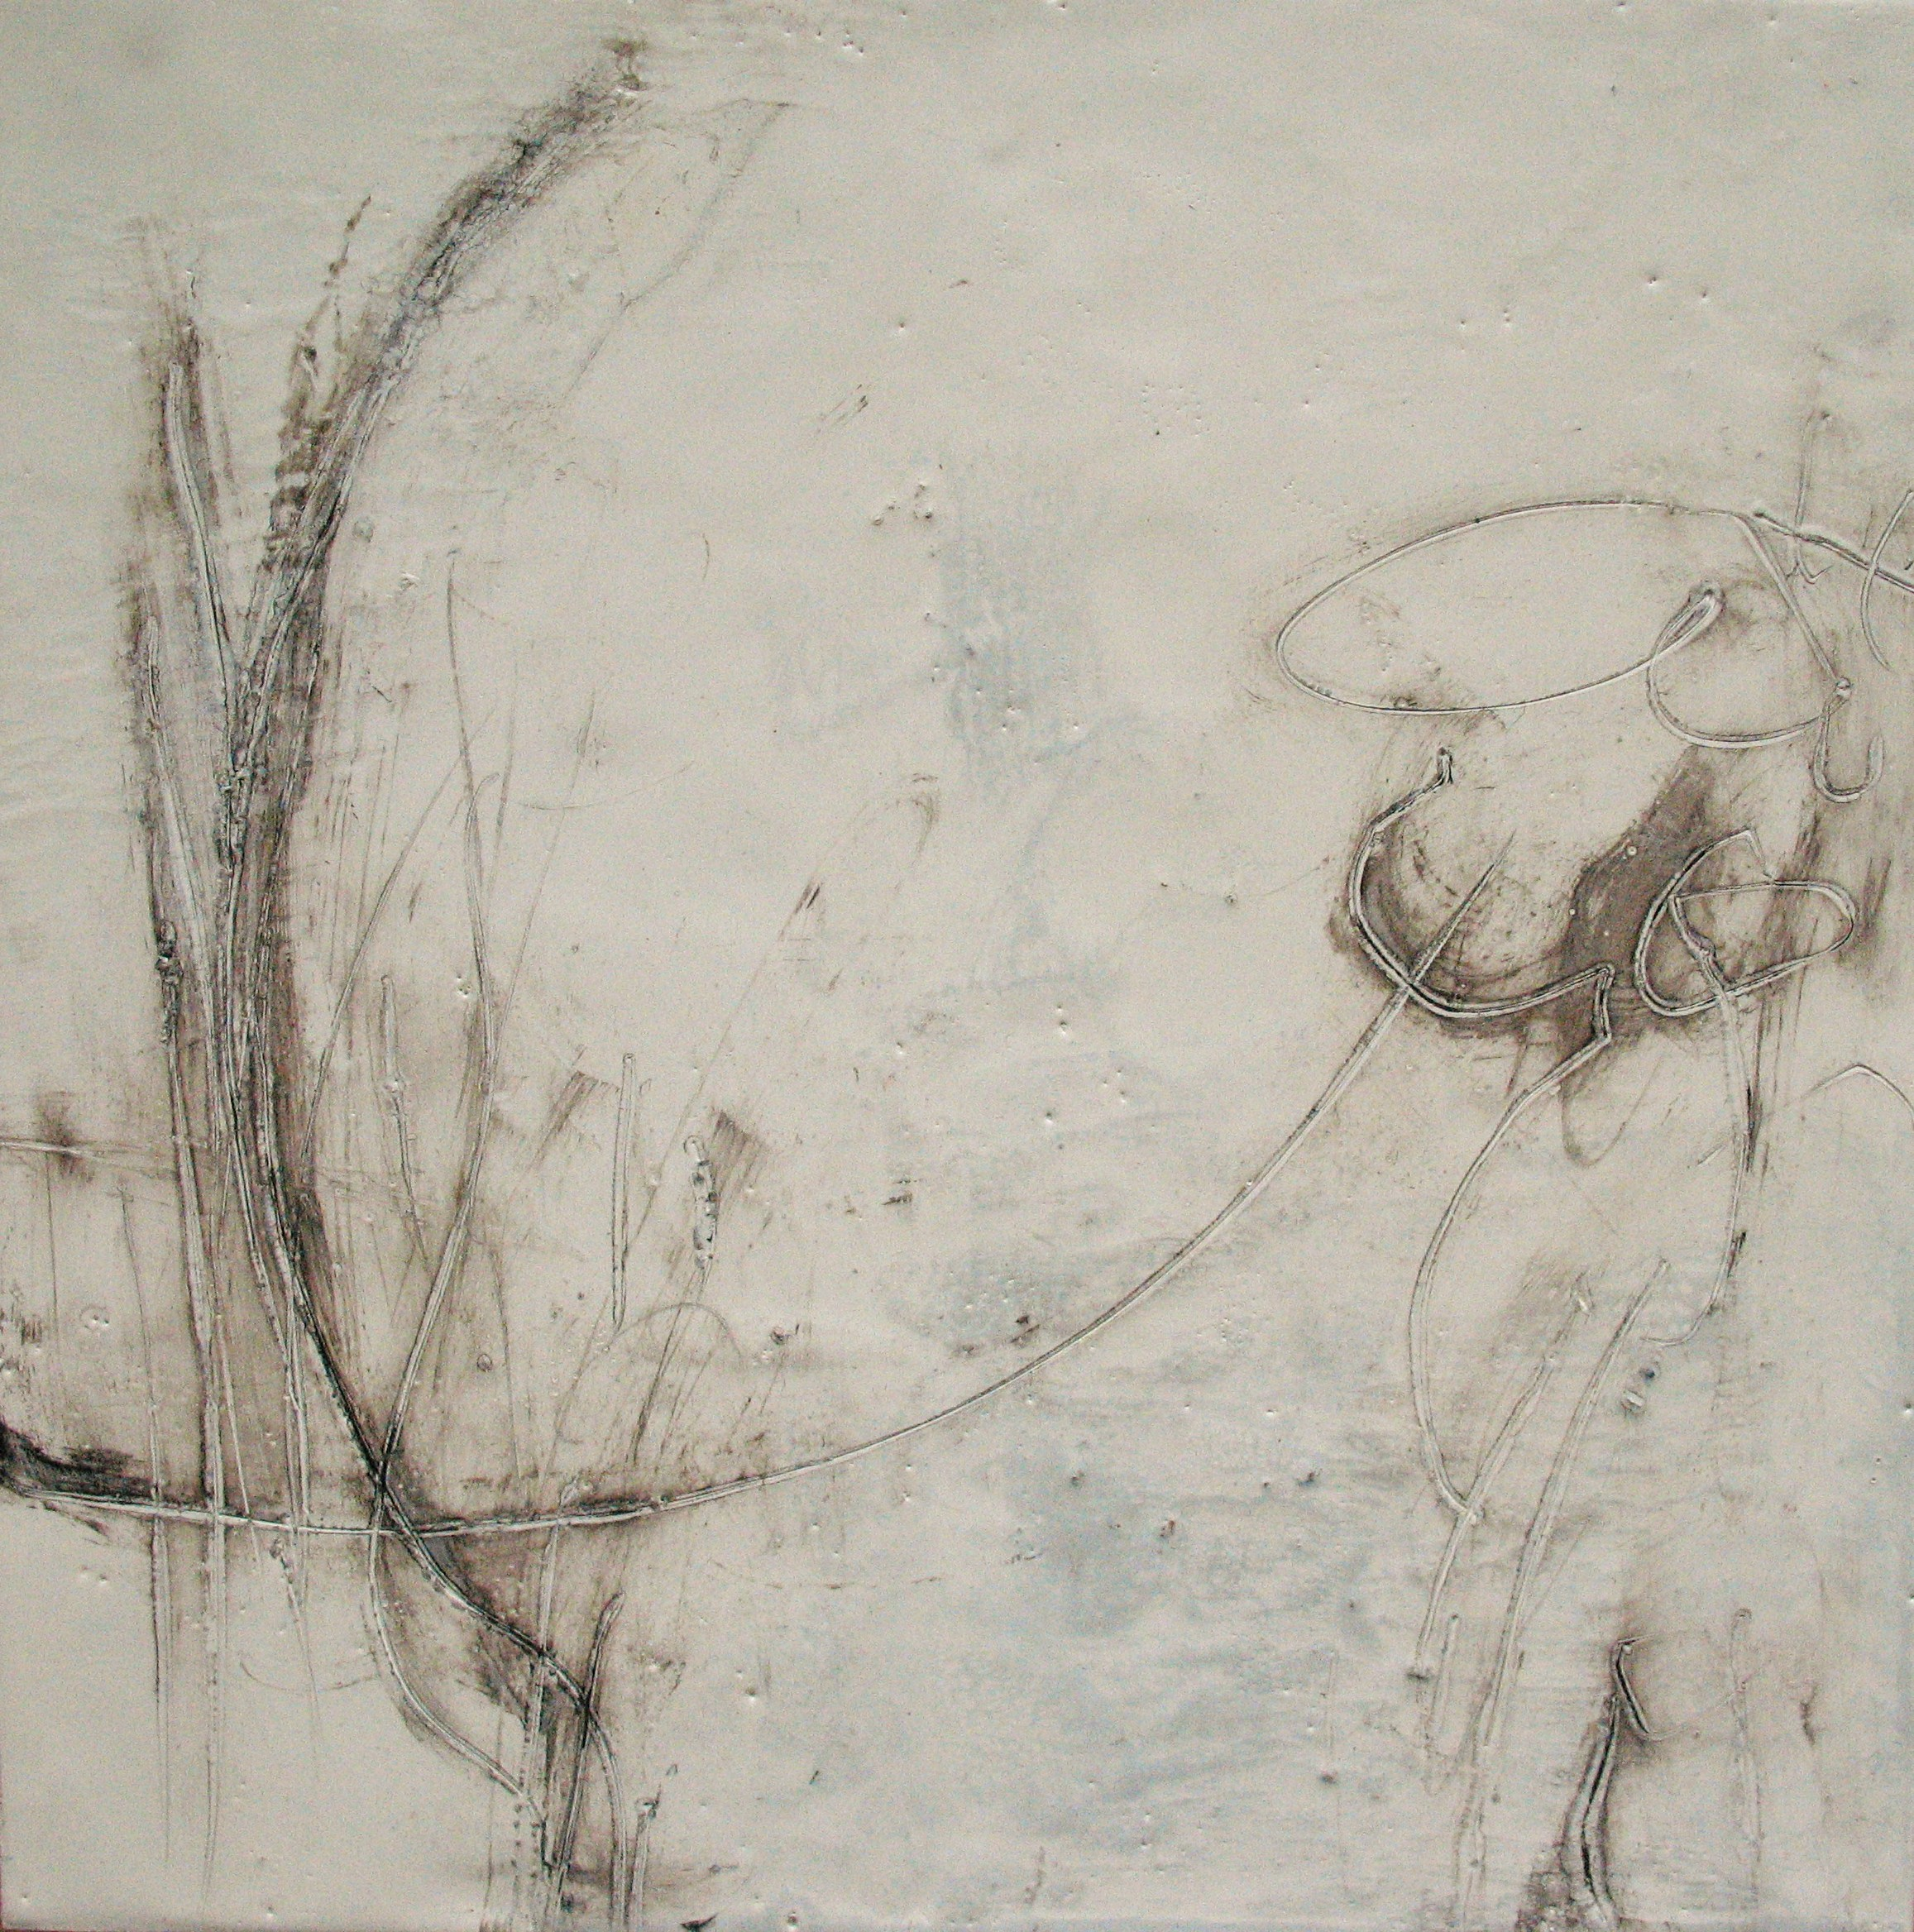 Untitled, 2008 / Encaustic on wood panel, 12 x 12 / Sold